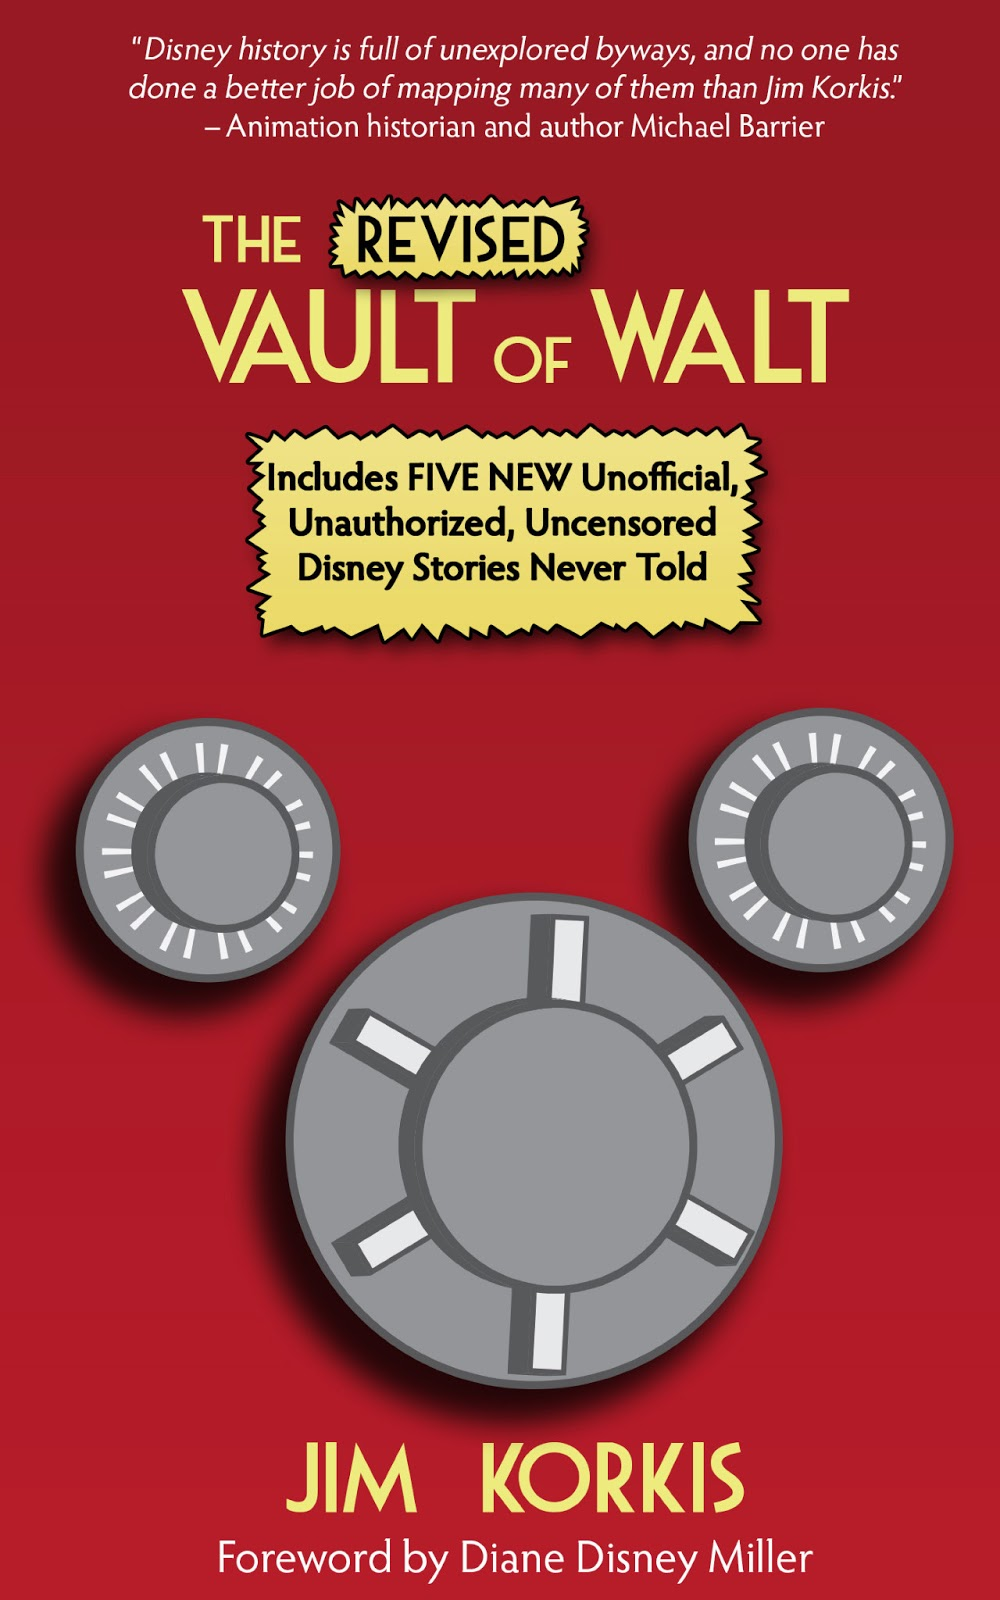 Renie Bardeau http://www.betweendisney.com/2013/02/between-books-revised-vault-of-walt.html